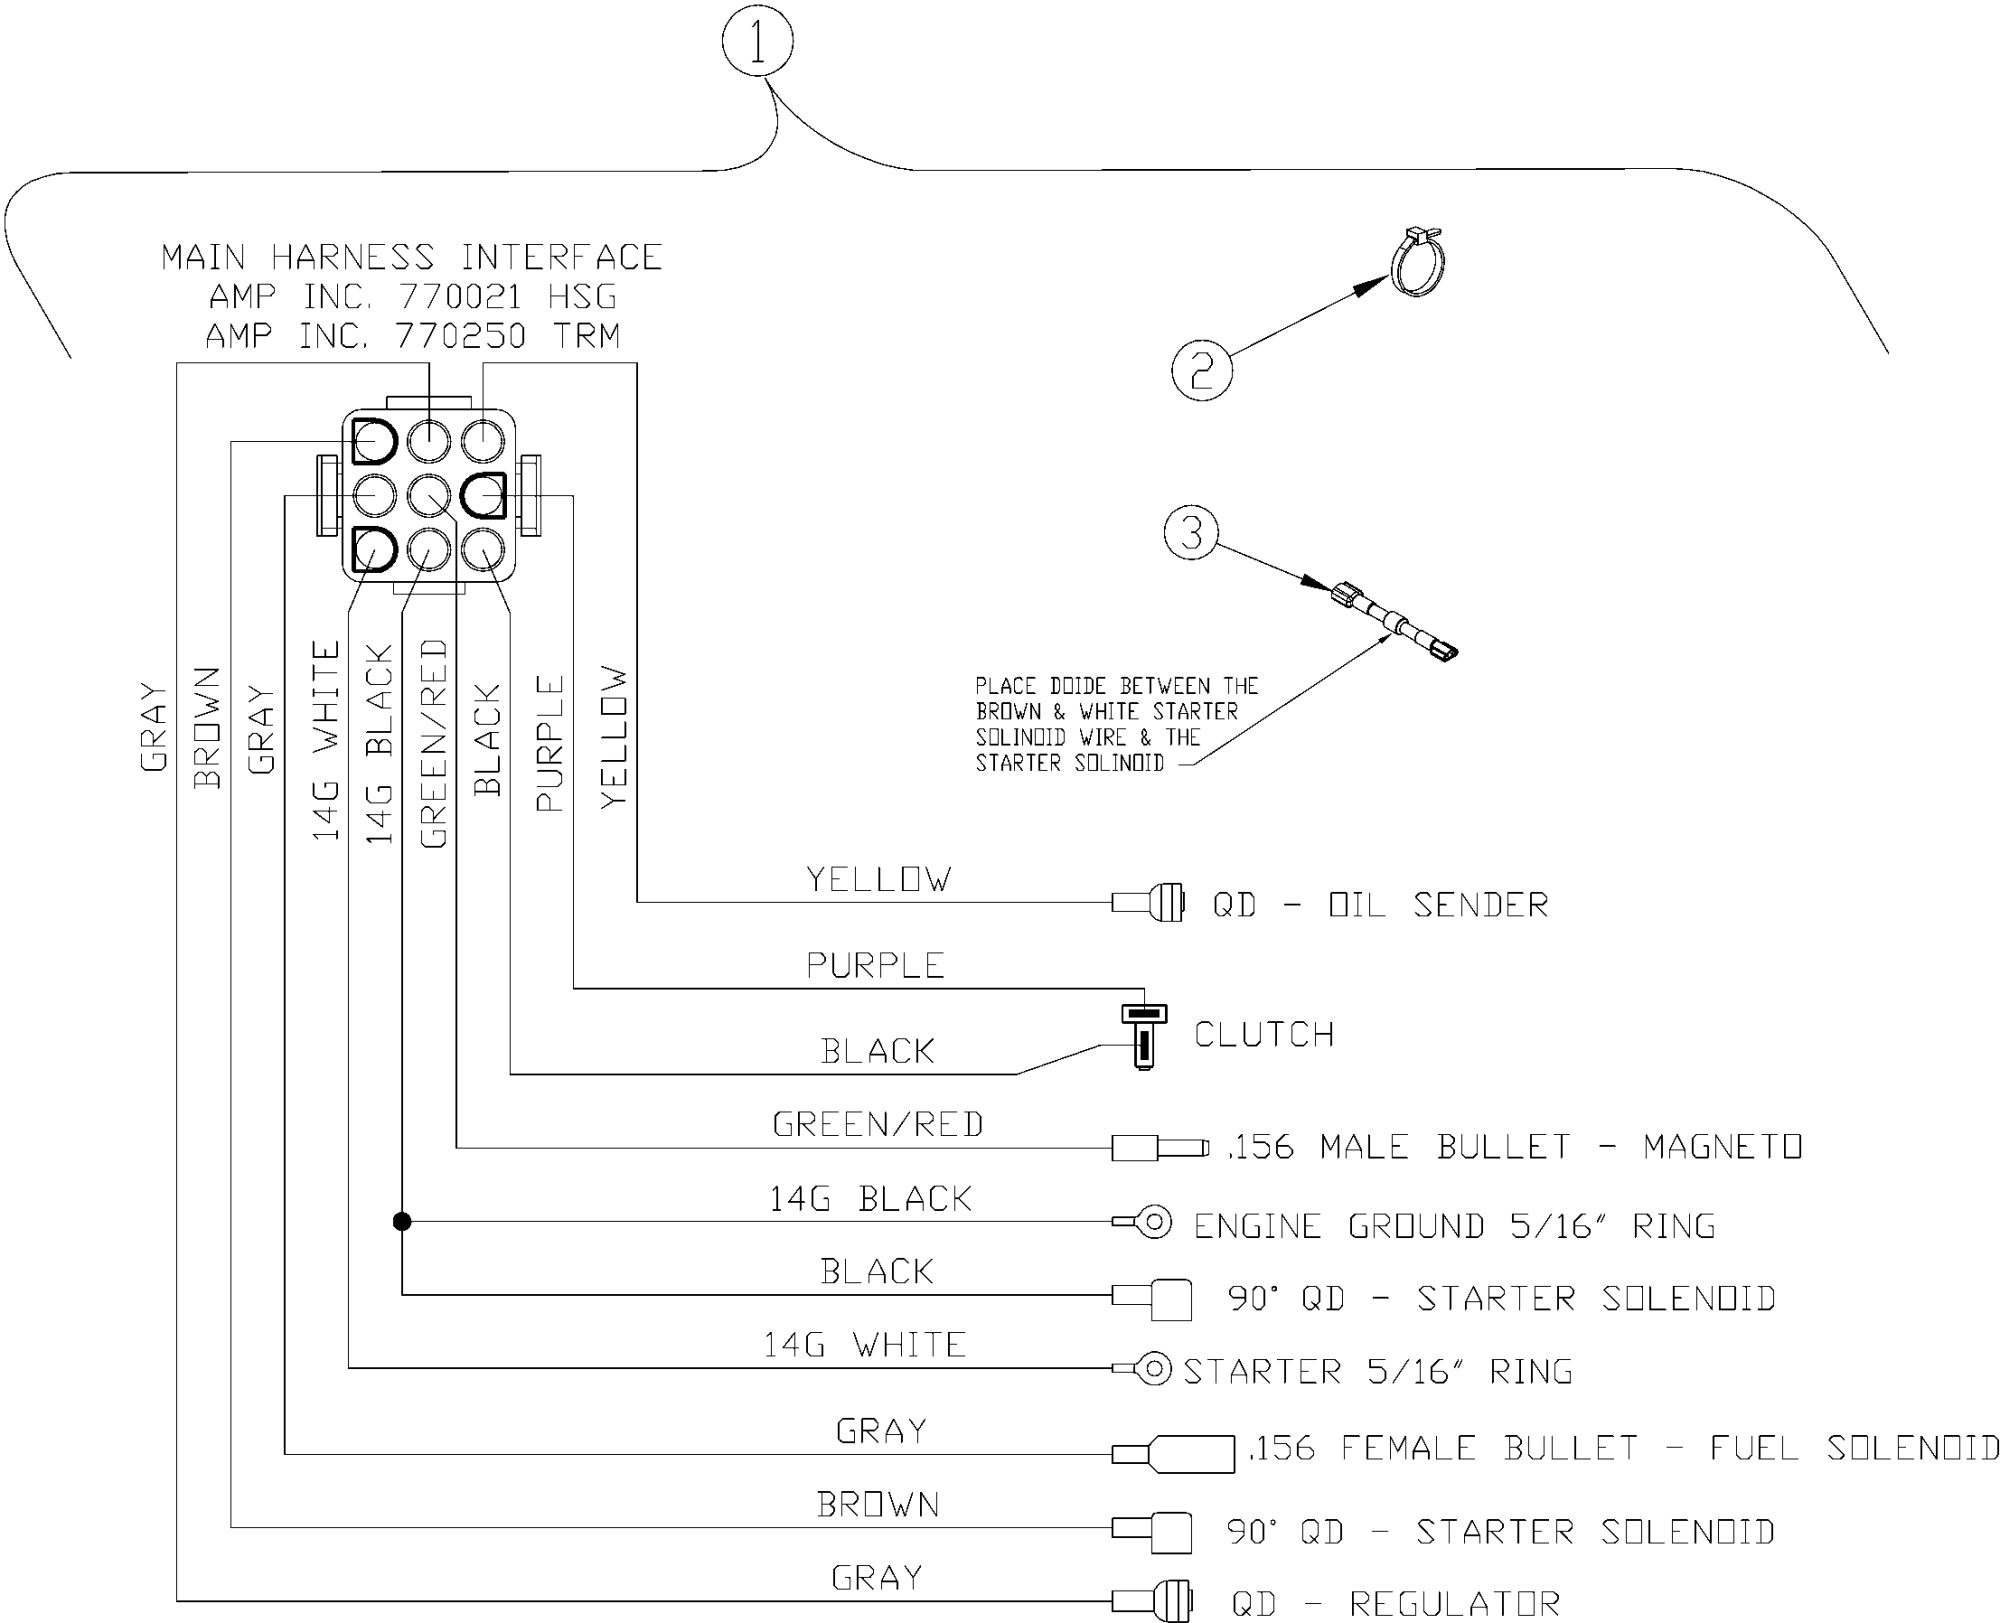 hight resolution of image of electrical wiring schematic kawasaki engine hover over image for expanded view